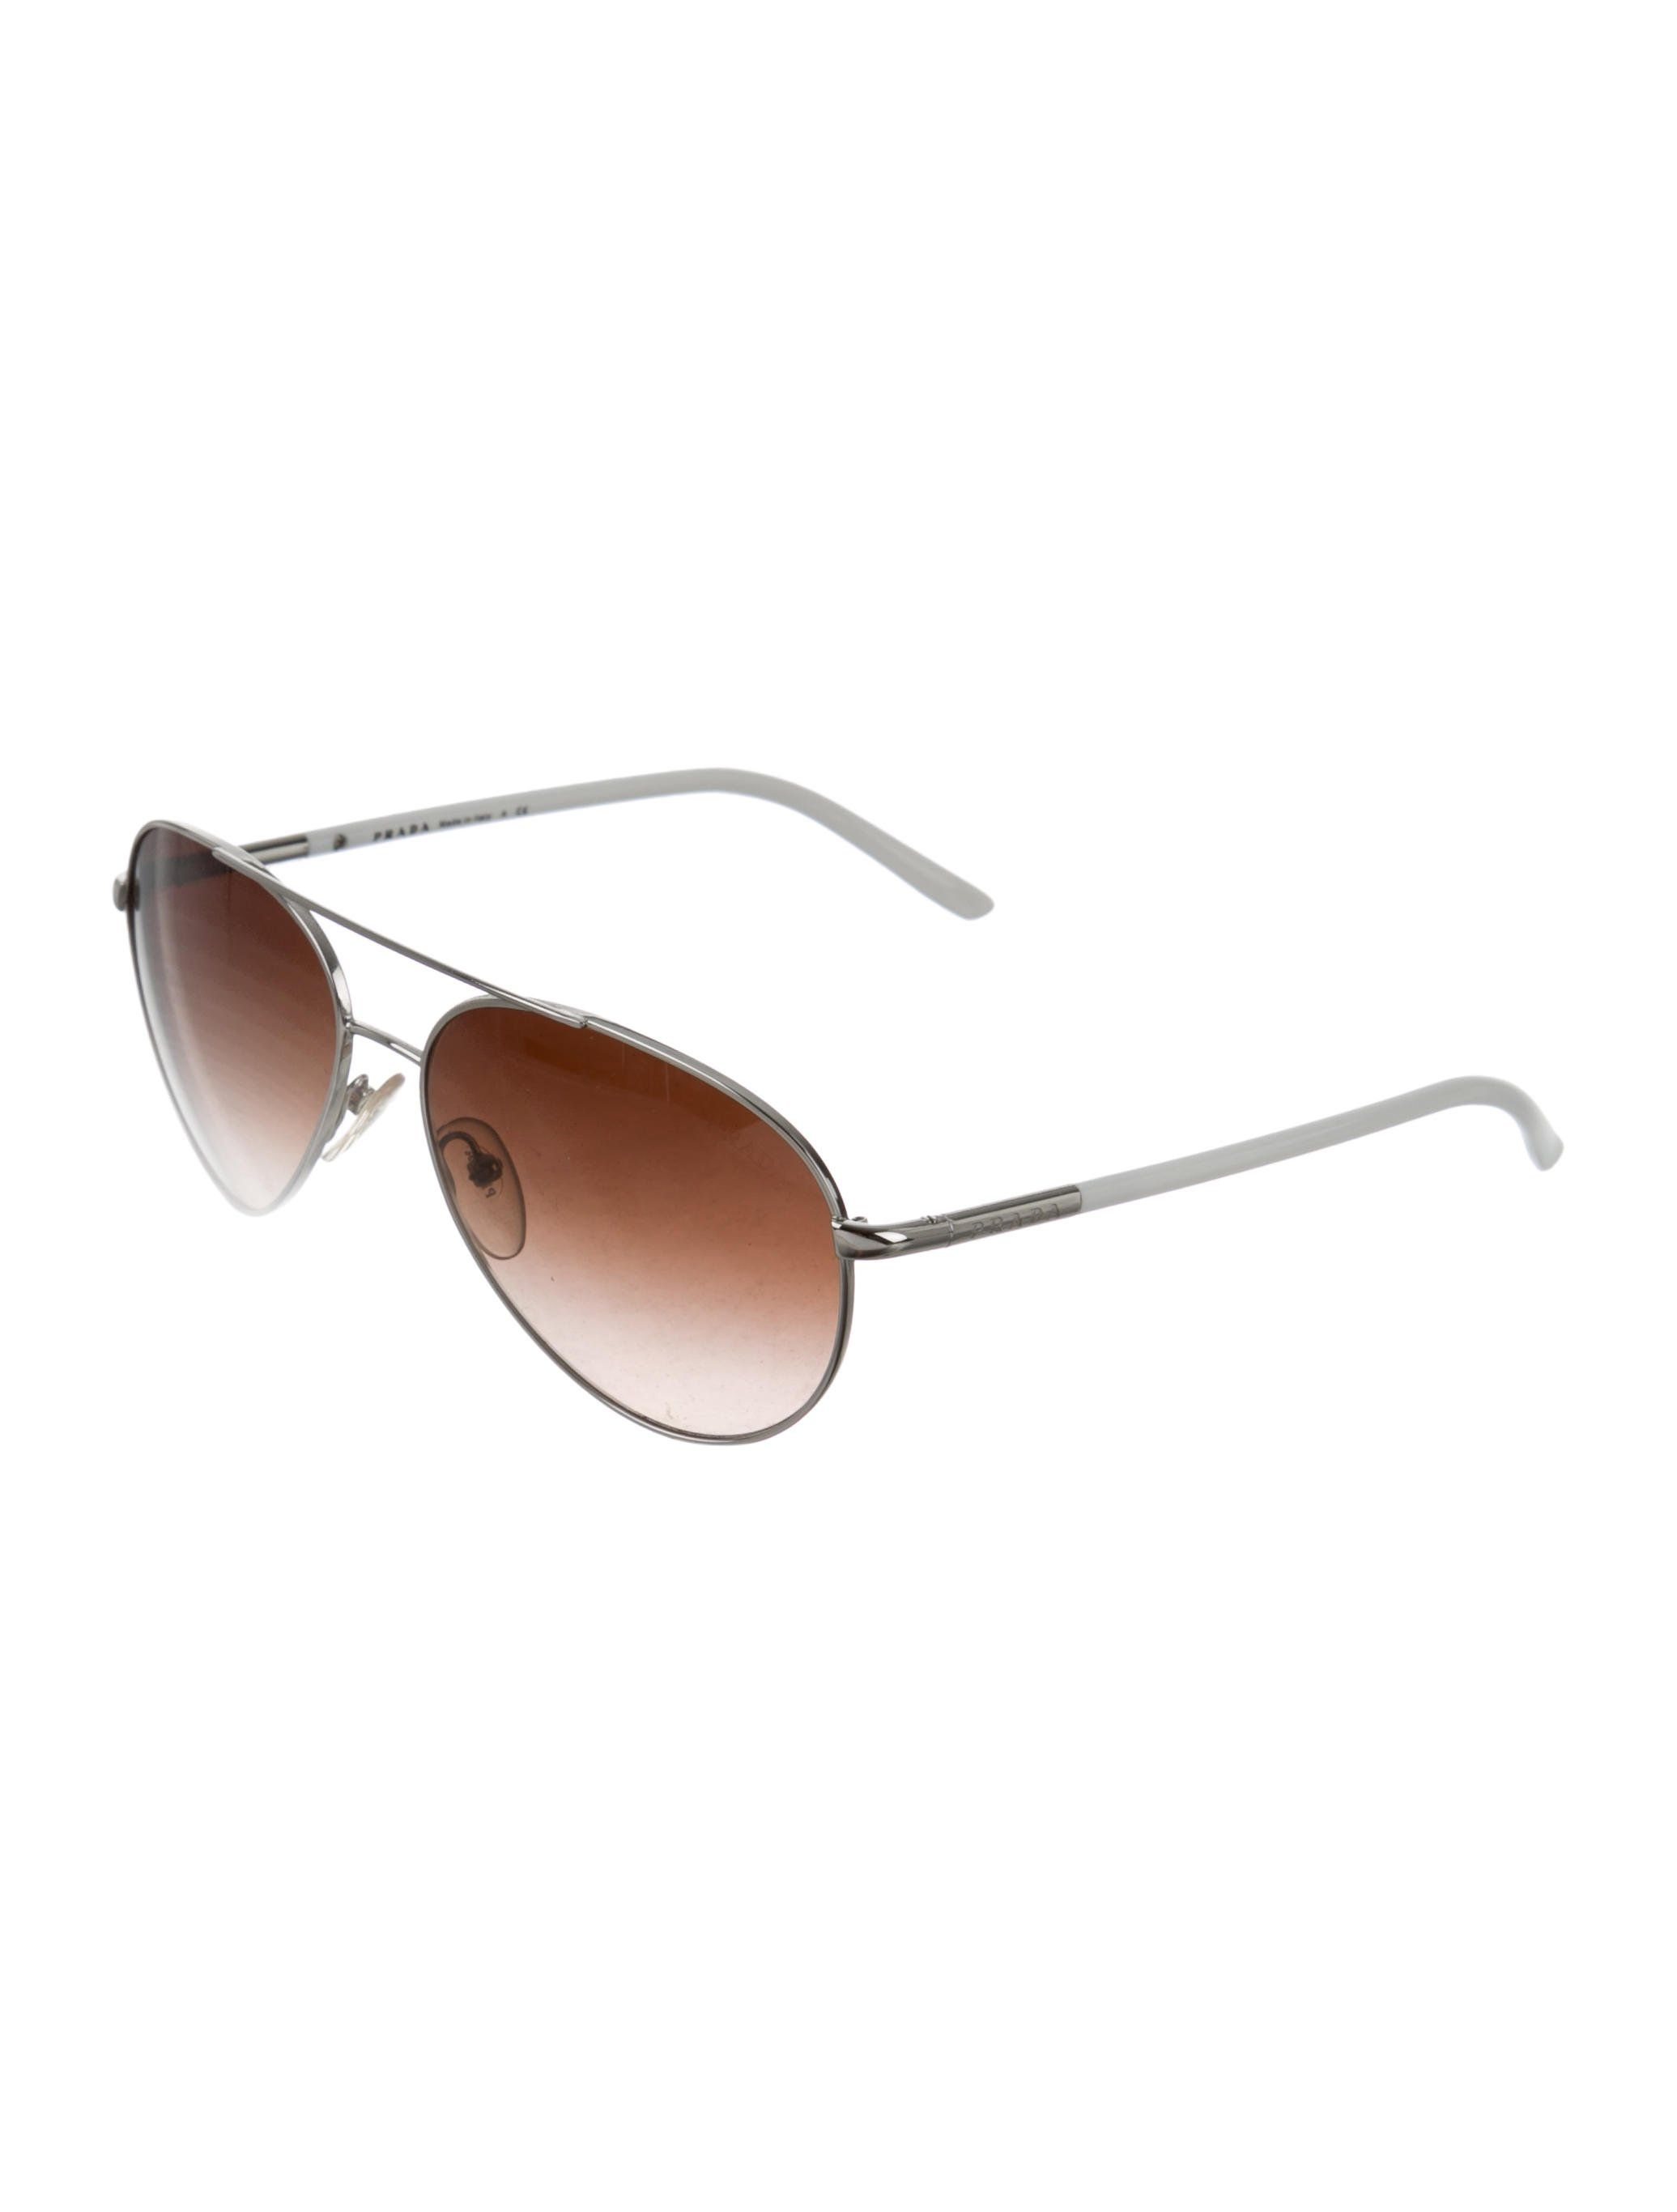 fc40e9f1540 Silver-tone metal Prada aviator sunglasses with tinted lenses and logos at  arms. Includes